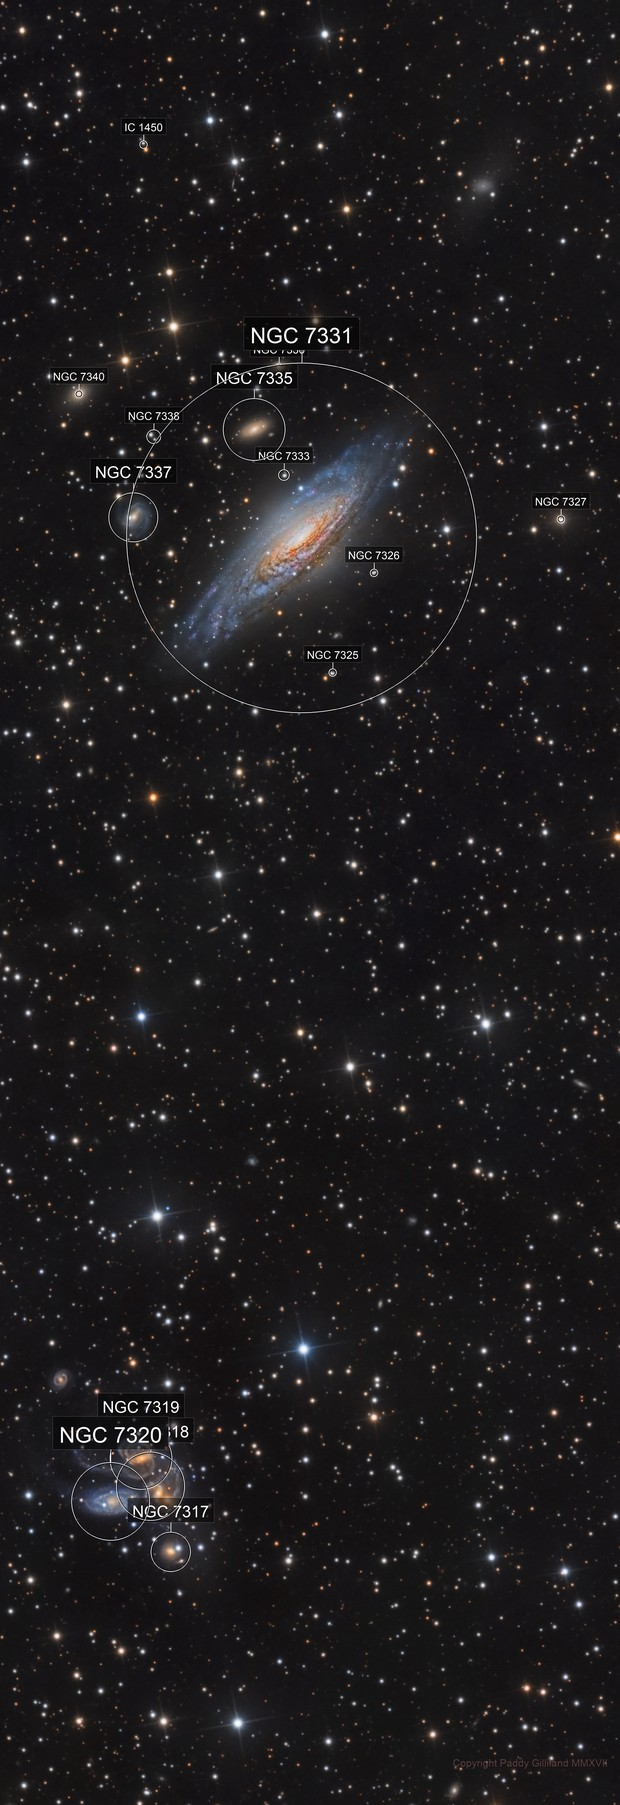 Galaxy Panorama - NGC 7331 and Deer Lick Group to Stephen's Quintet